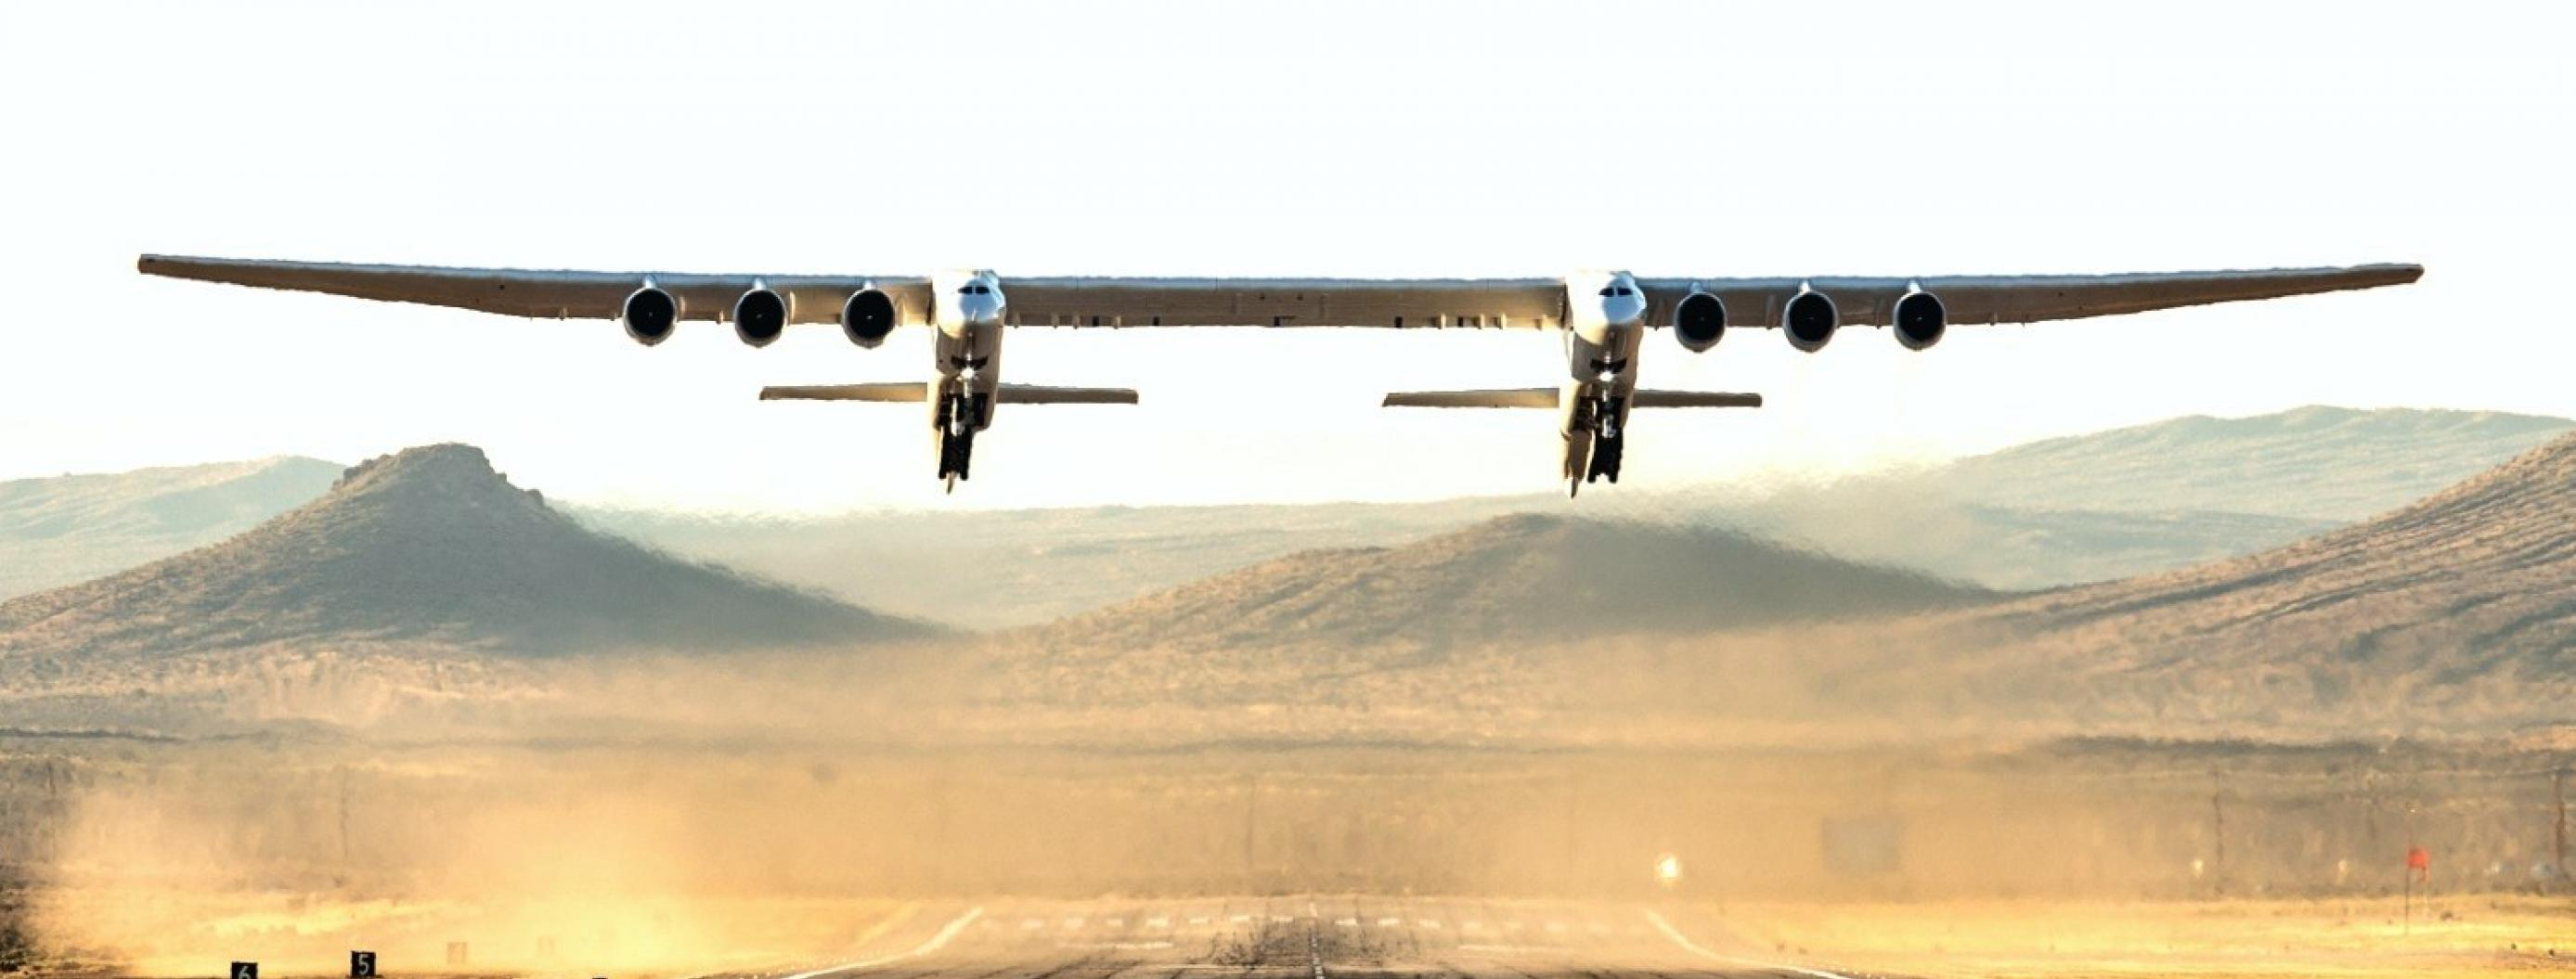 World's Biggest Airplane Built by Stratolaunch Makes Its First Flight